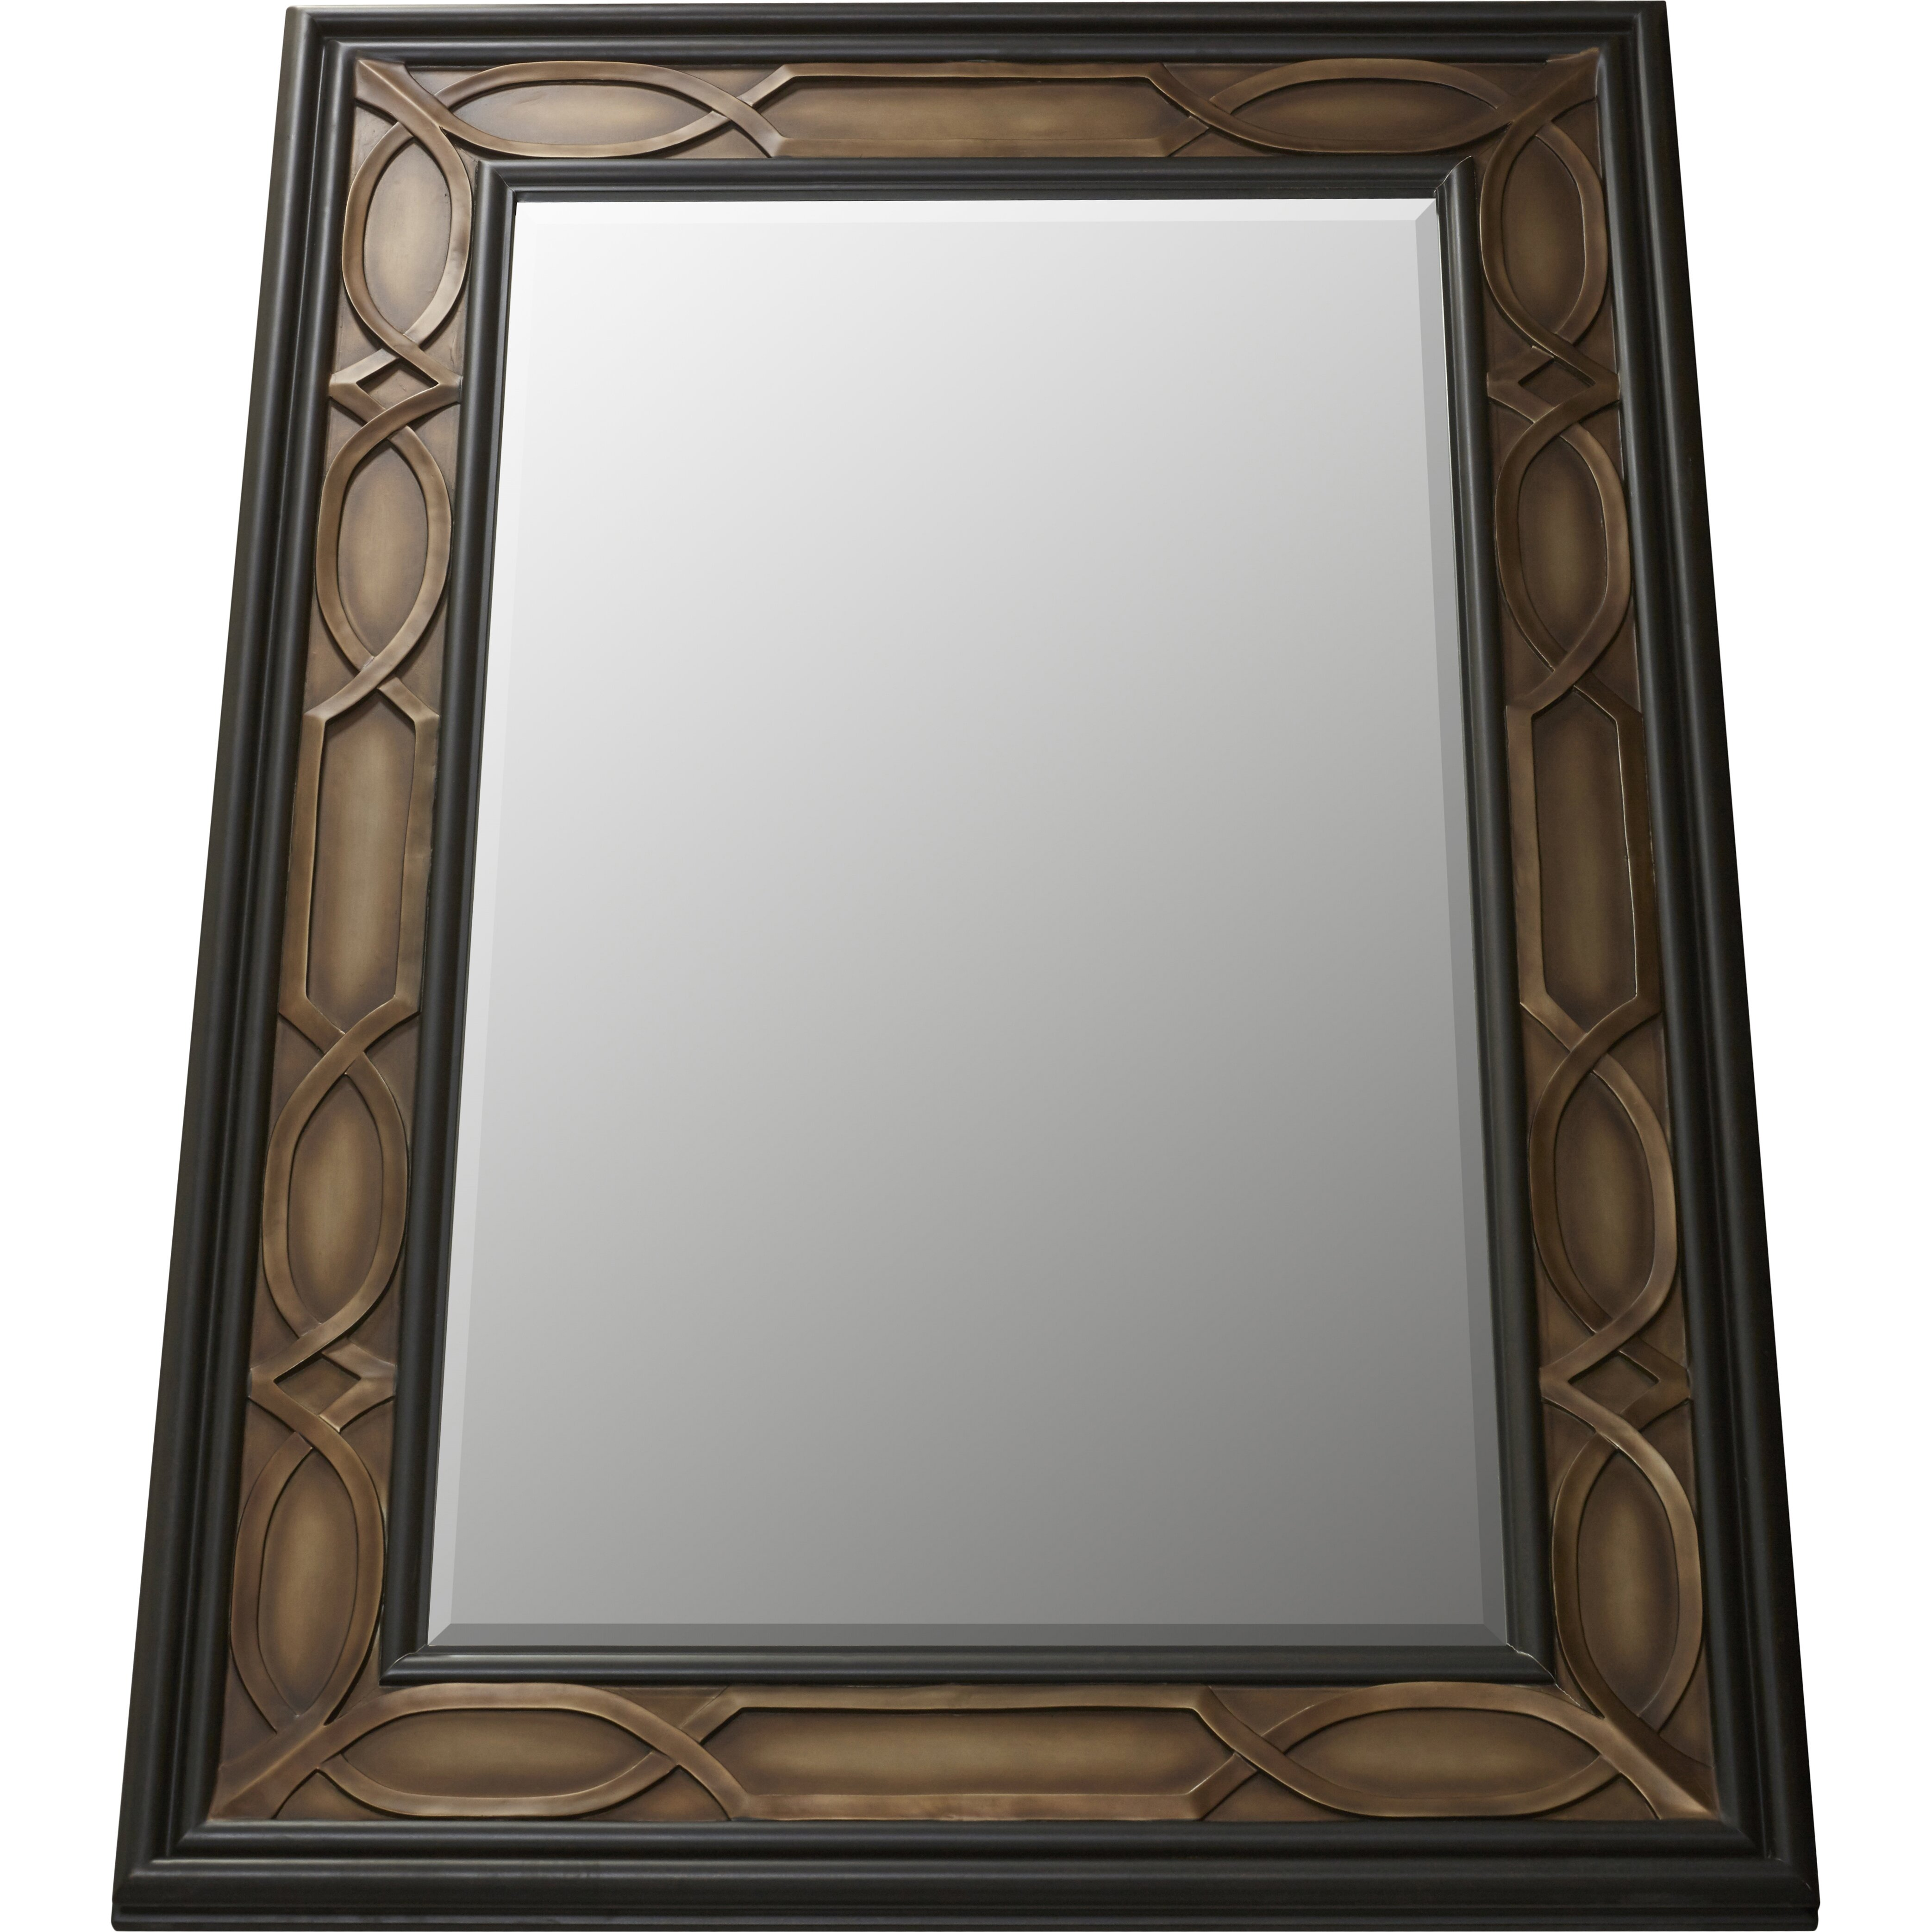 Darby home co london leaning floor mirror reviews wayfair for Glass floor mirror